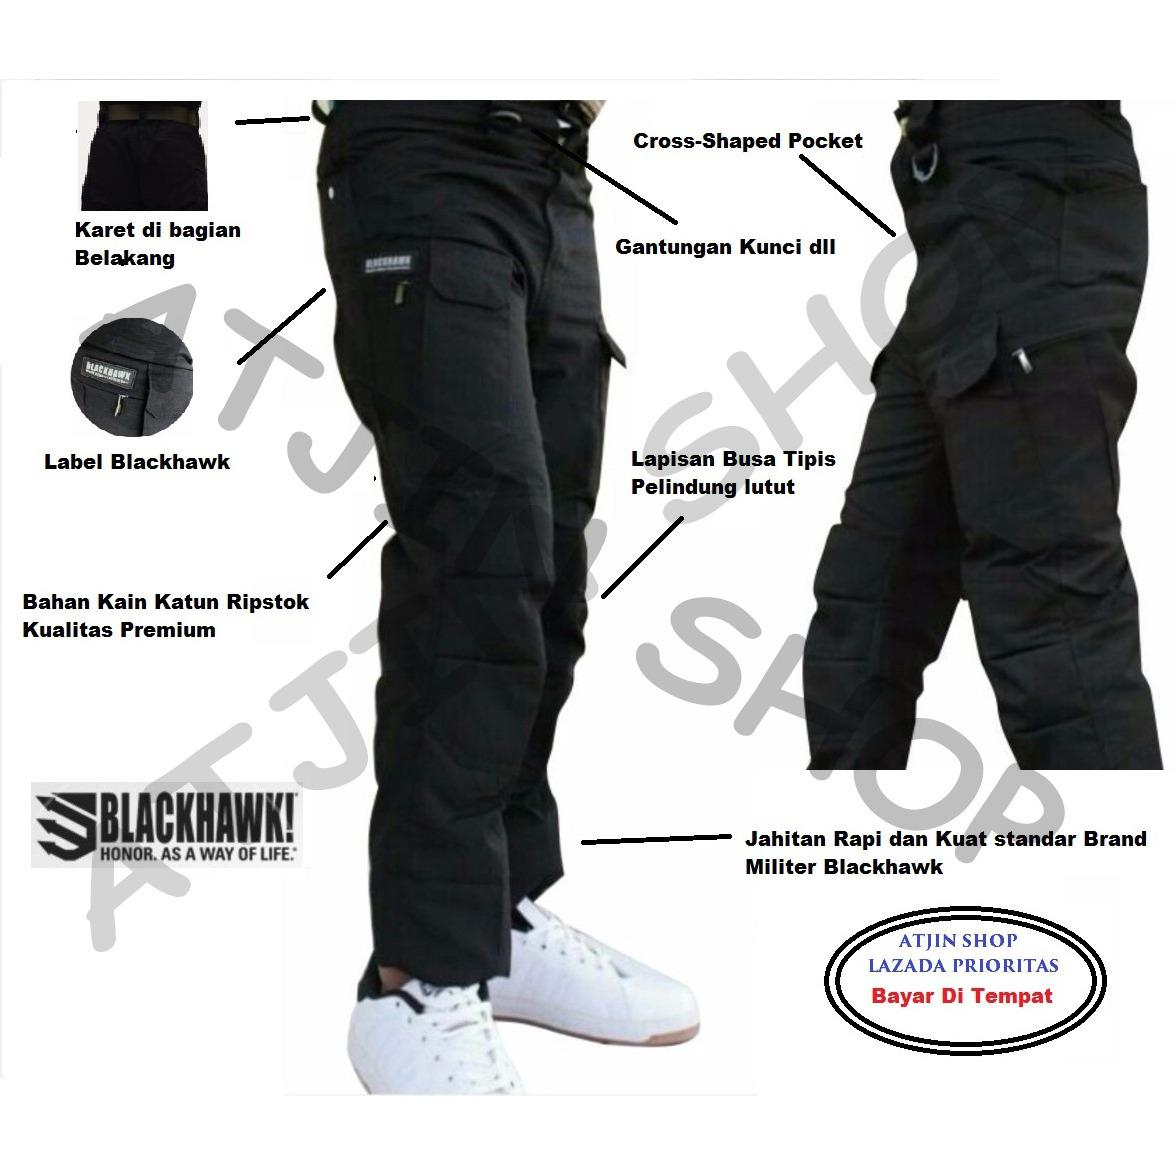 Blackhawk-Celana Tactical Blackhawk Panjang PDL Kargo Long Pants [HITAM]